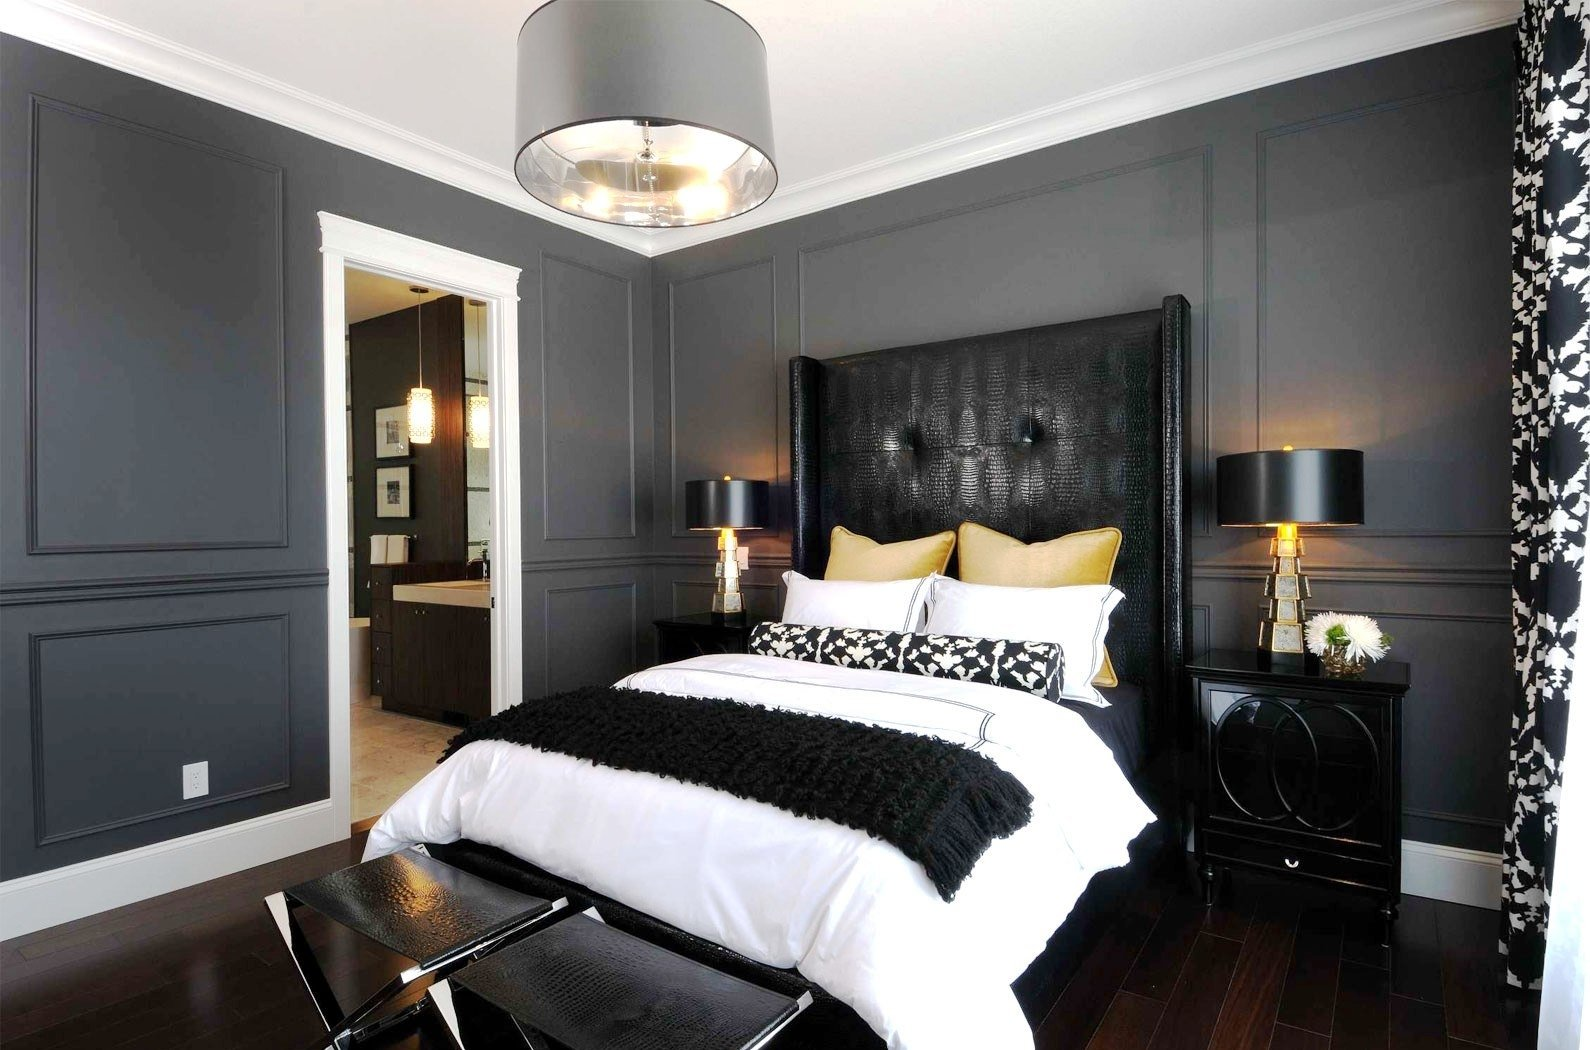 10 Nice Bedroom Color Ideas For Couples romantic black and grey master bedroom with drum lamp ideas relaxing 2020